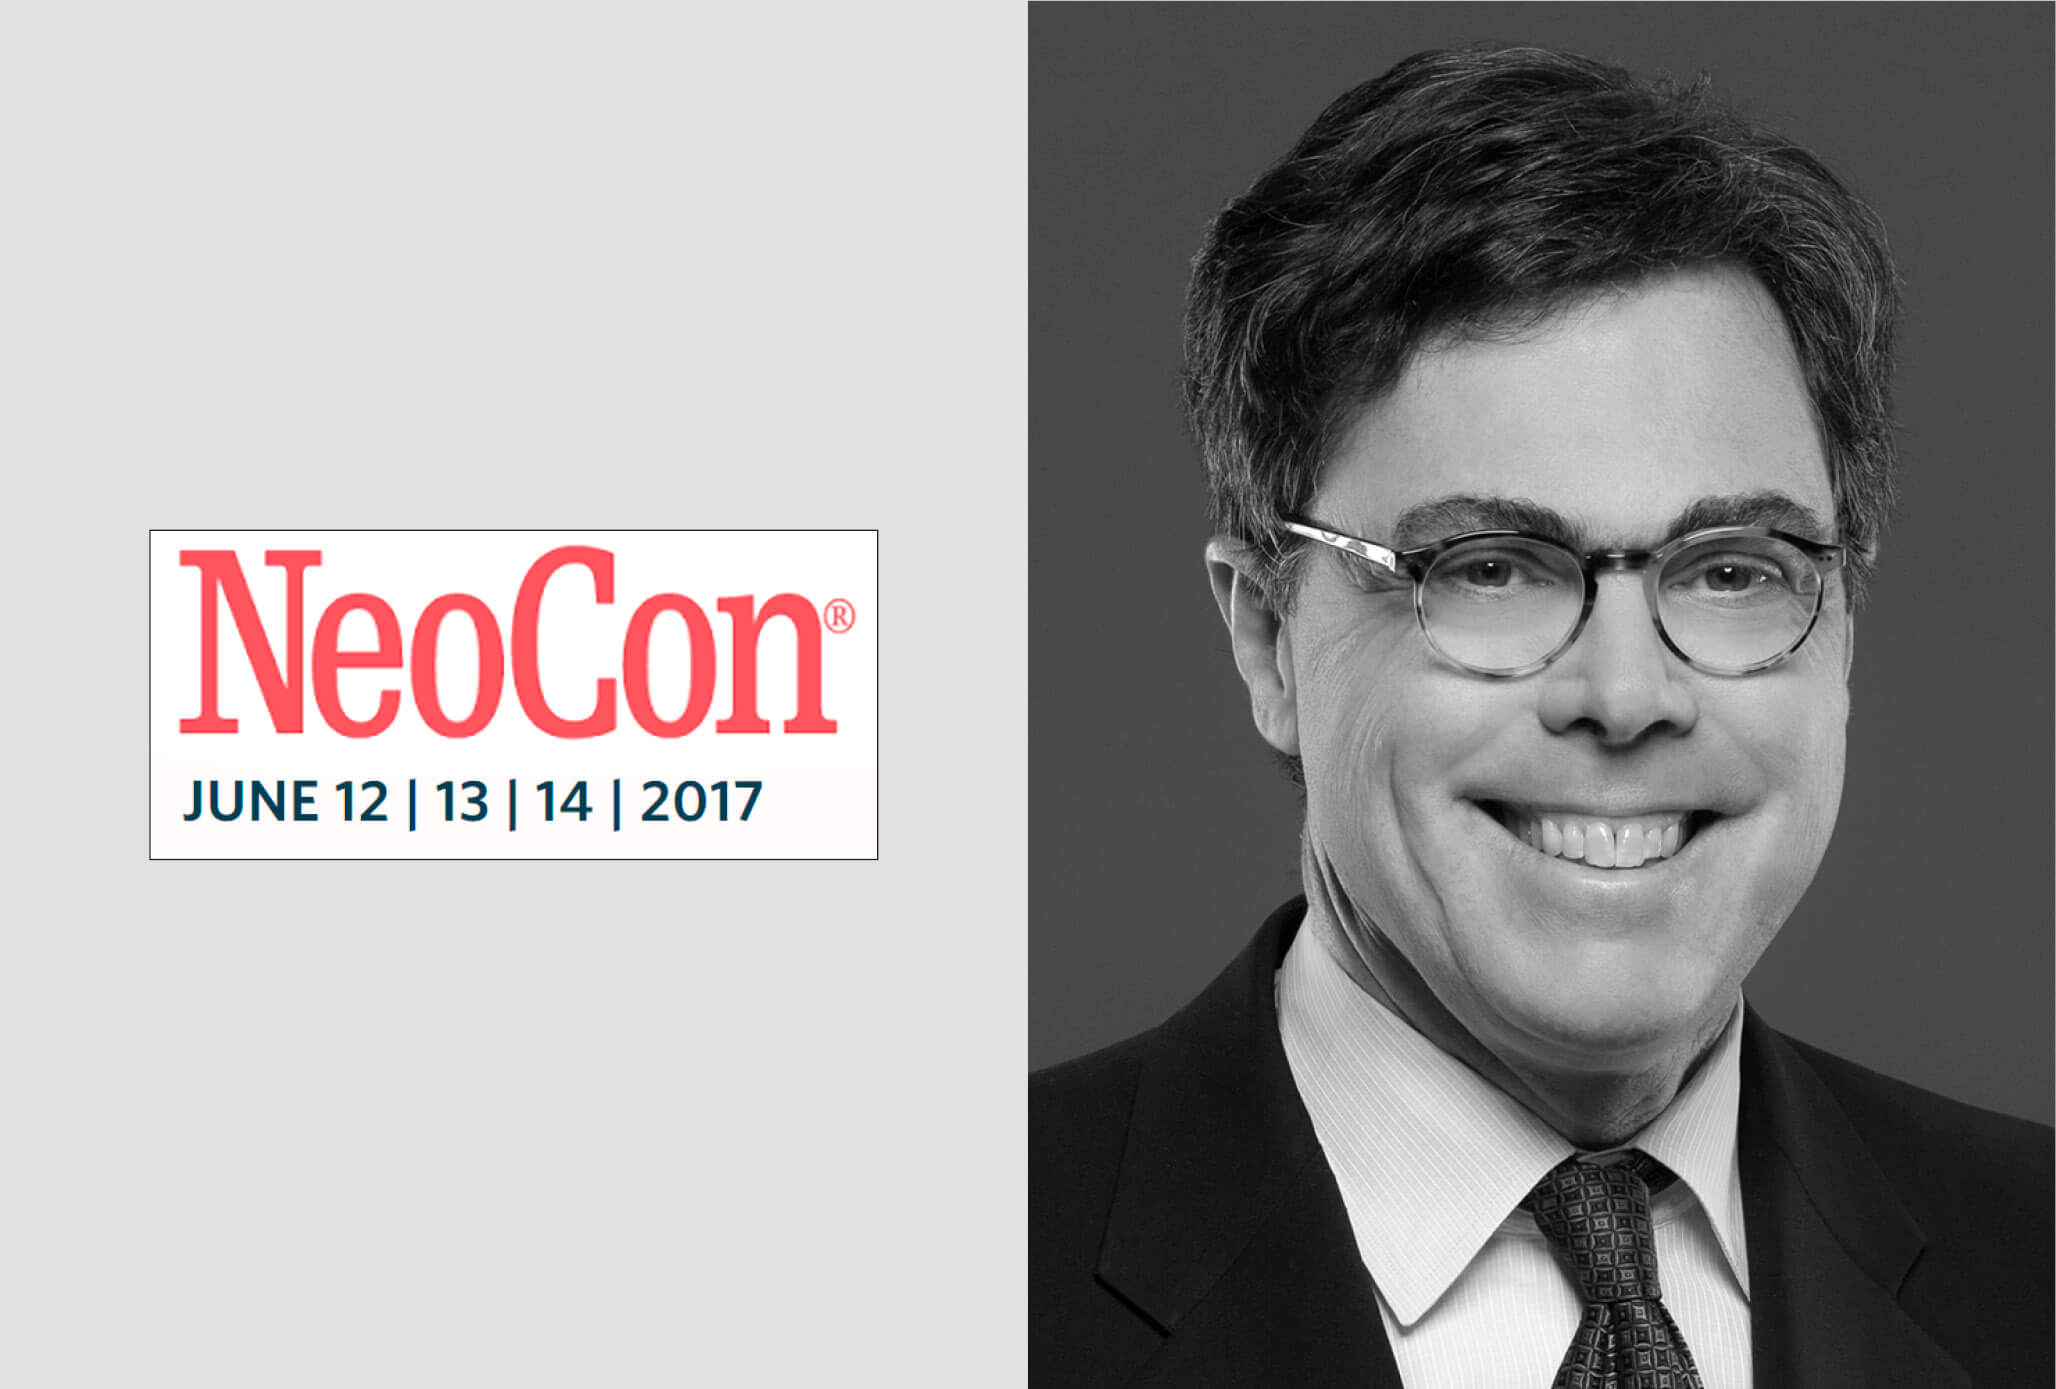 Alexander Lamis to Present at NeoCon 2017